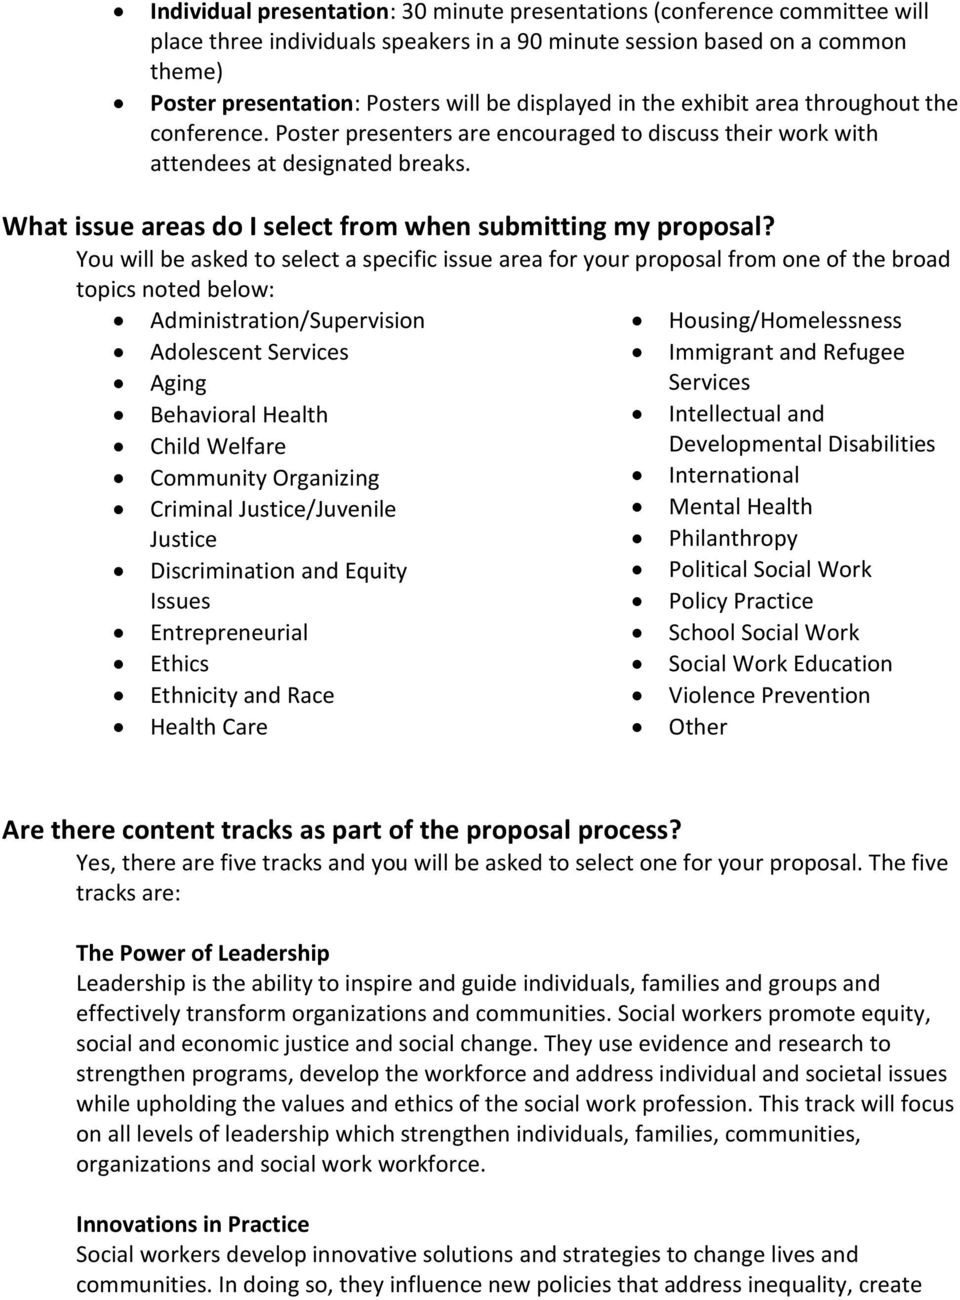 What issue areas do I select from when submitting my proposal?